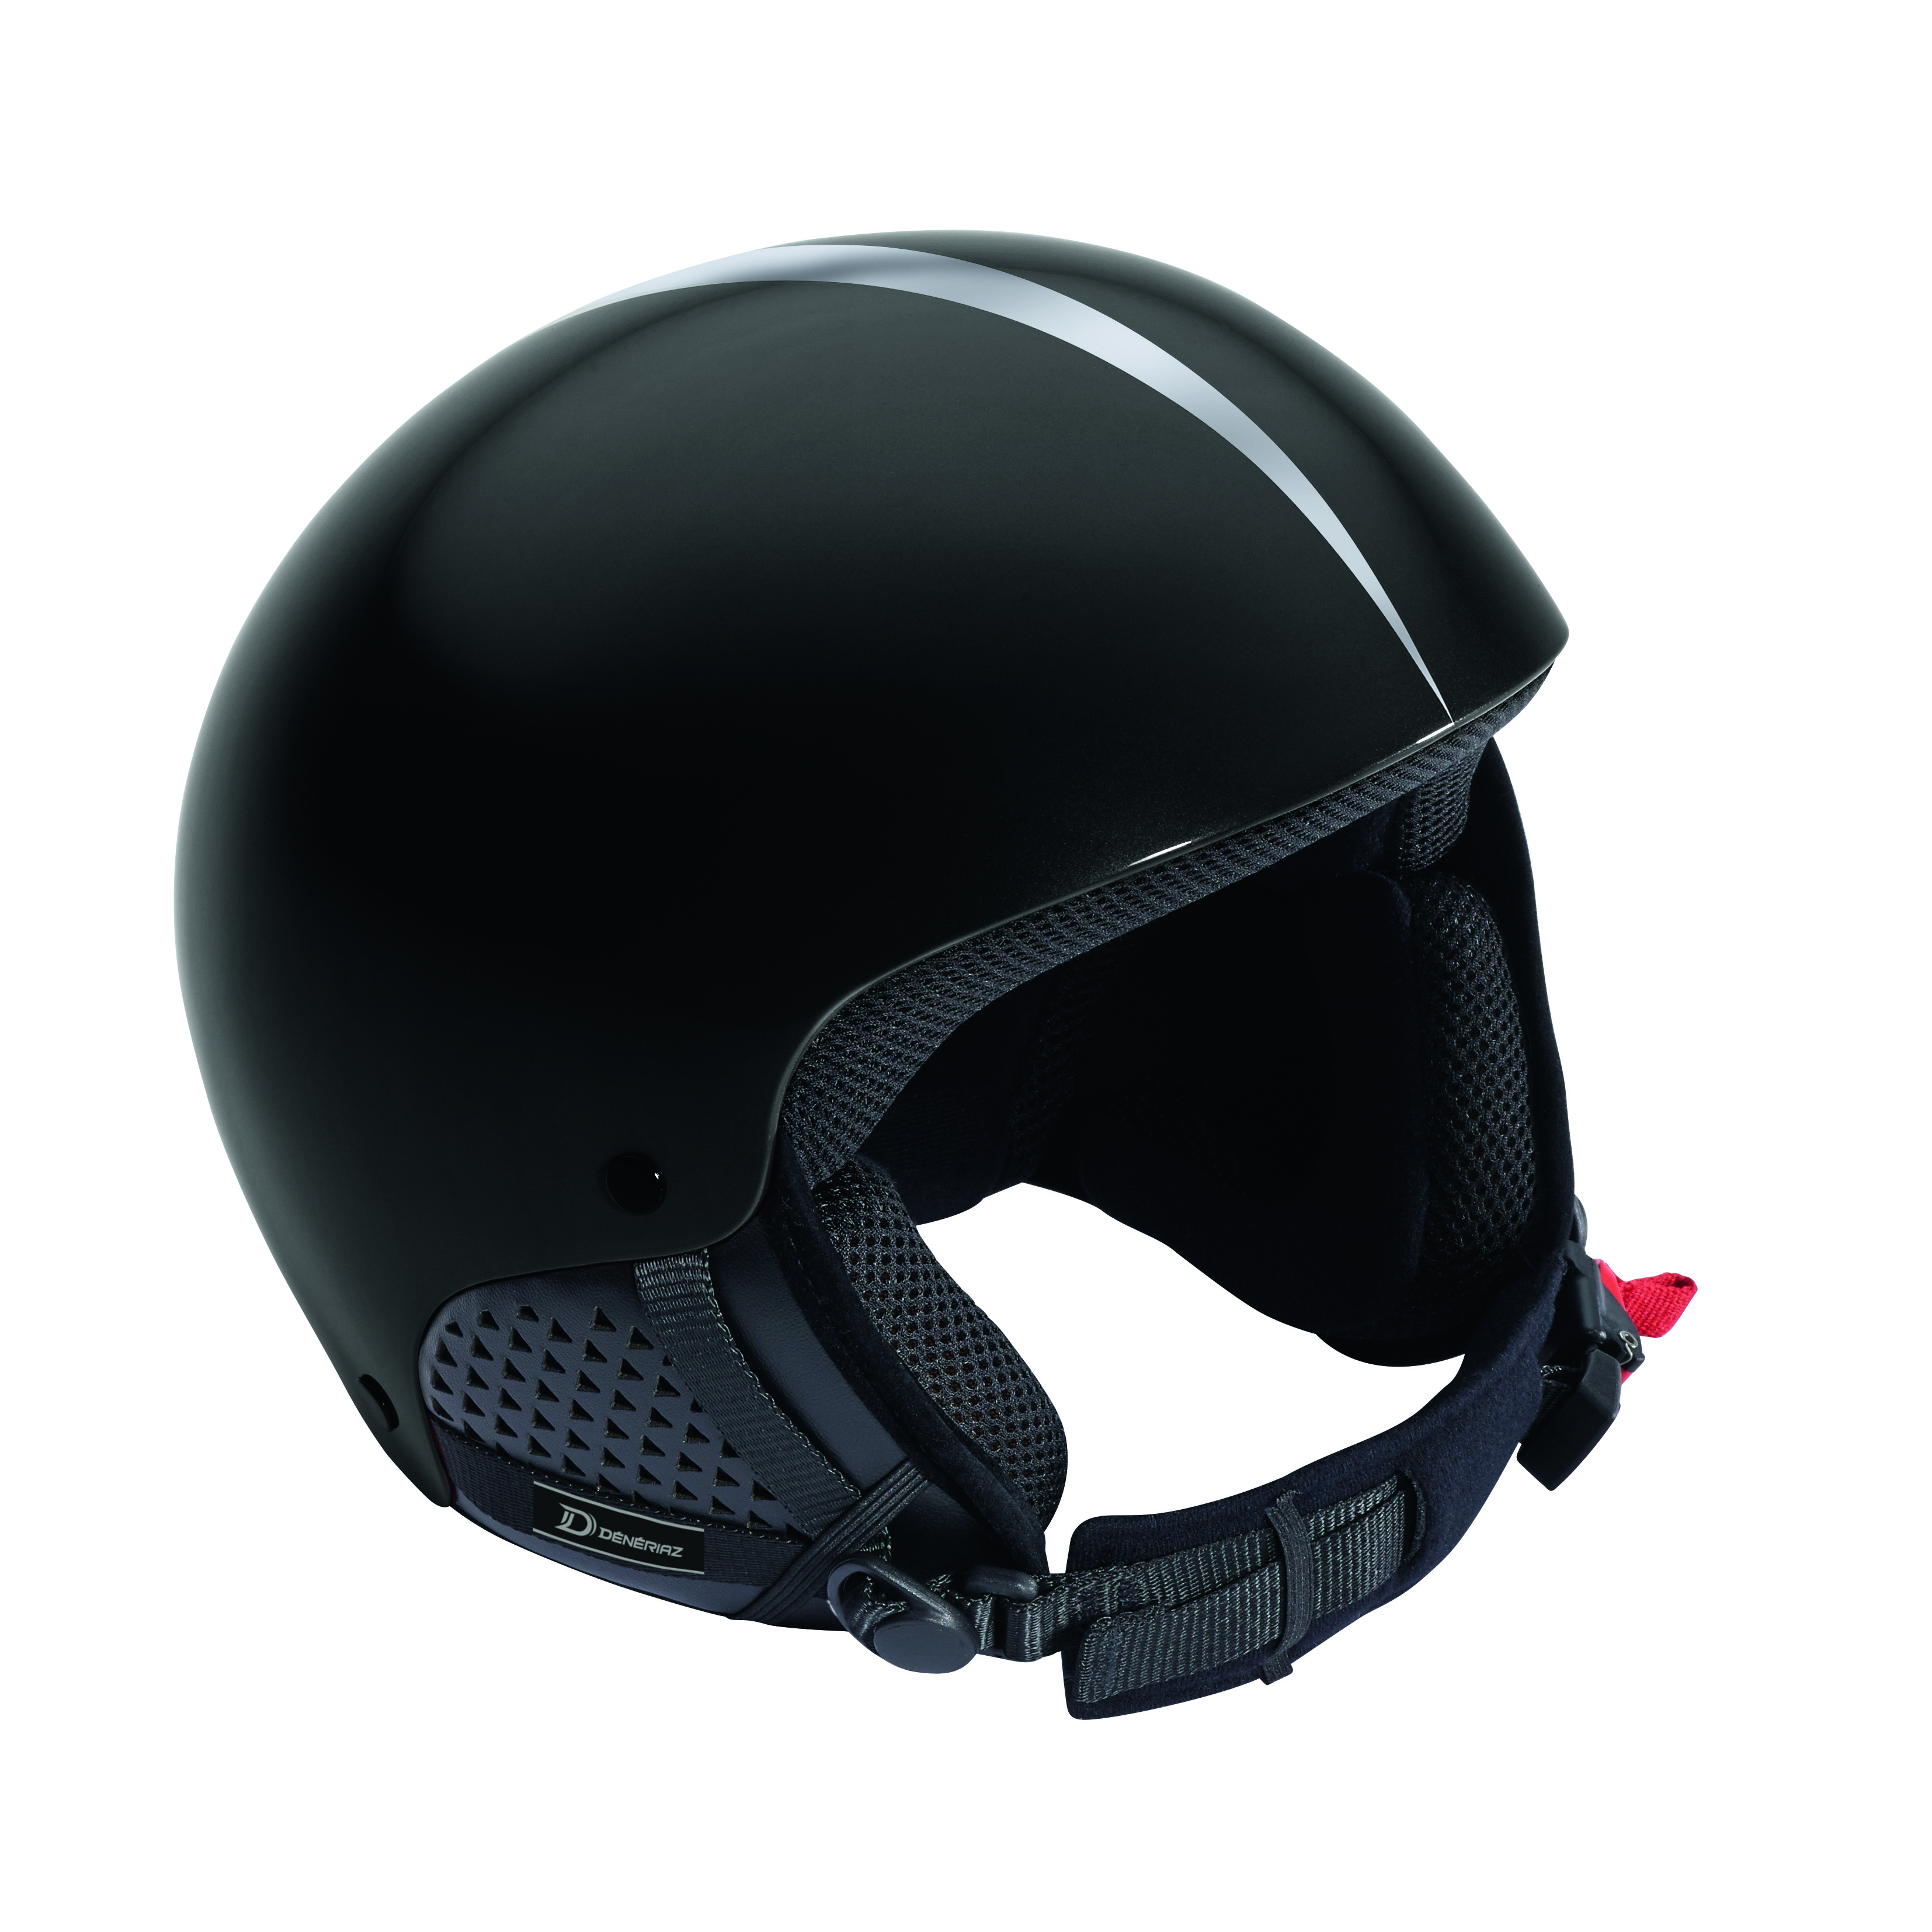 Deneriaz Torino Ski Helmet with Silver Arrow